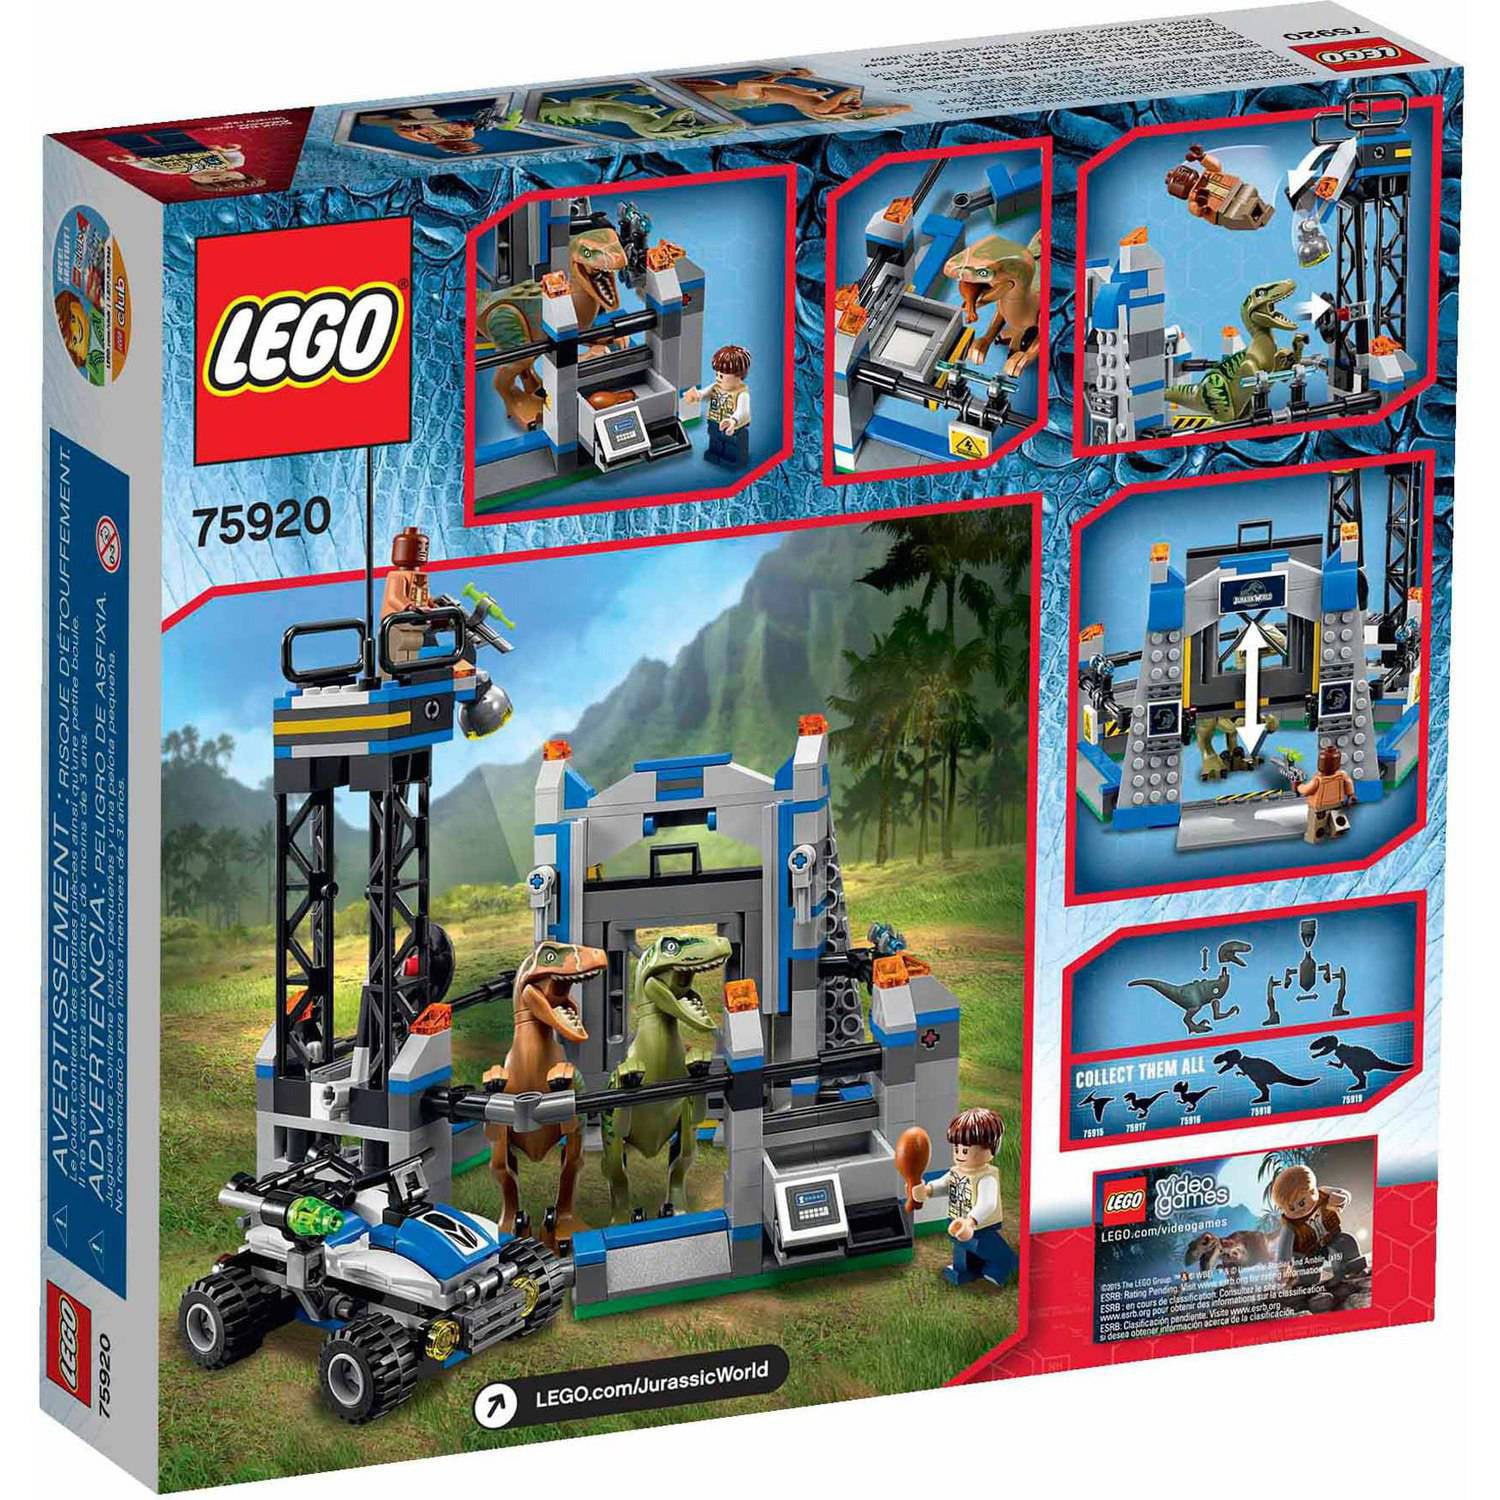 · Walmart offers the LEGO City Jungle Explorers Jungle Mobile Lab Set for $ Opt for in-store pickup to avoid the $ shipping fee. That's the lowest price we could find by $6.